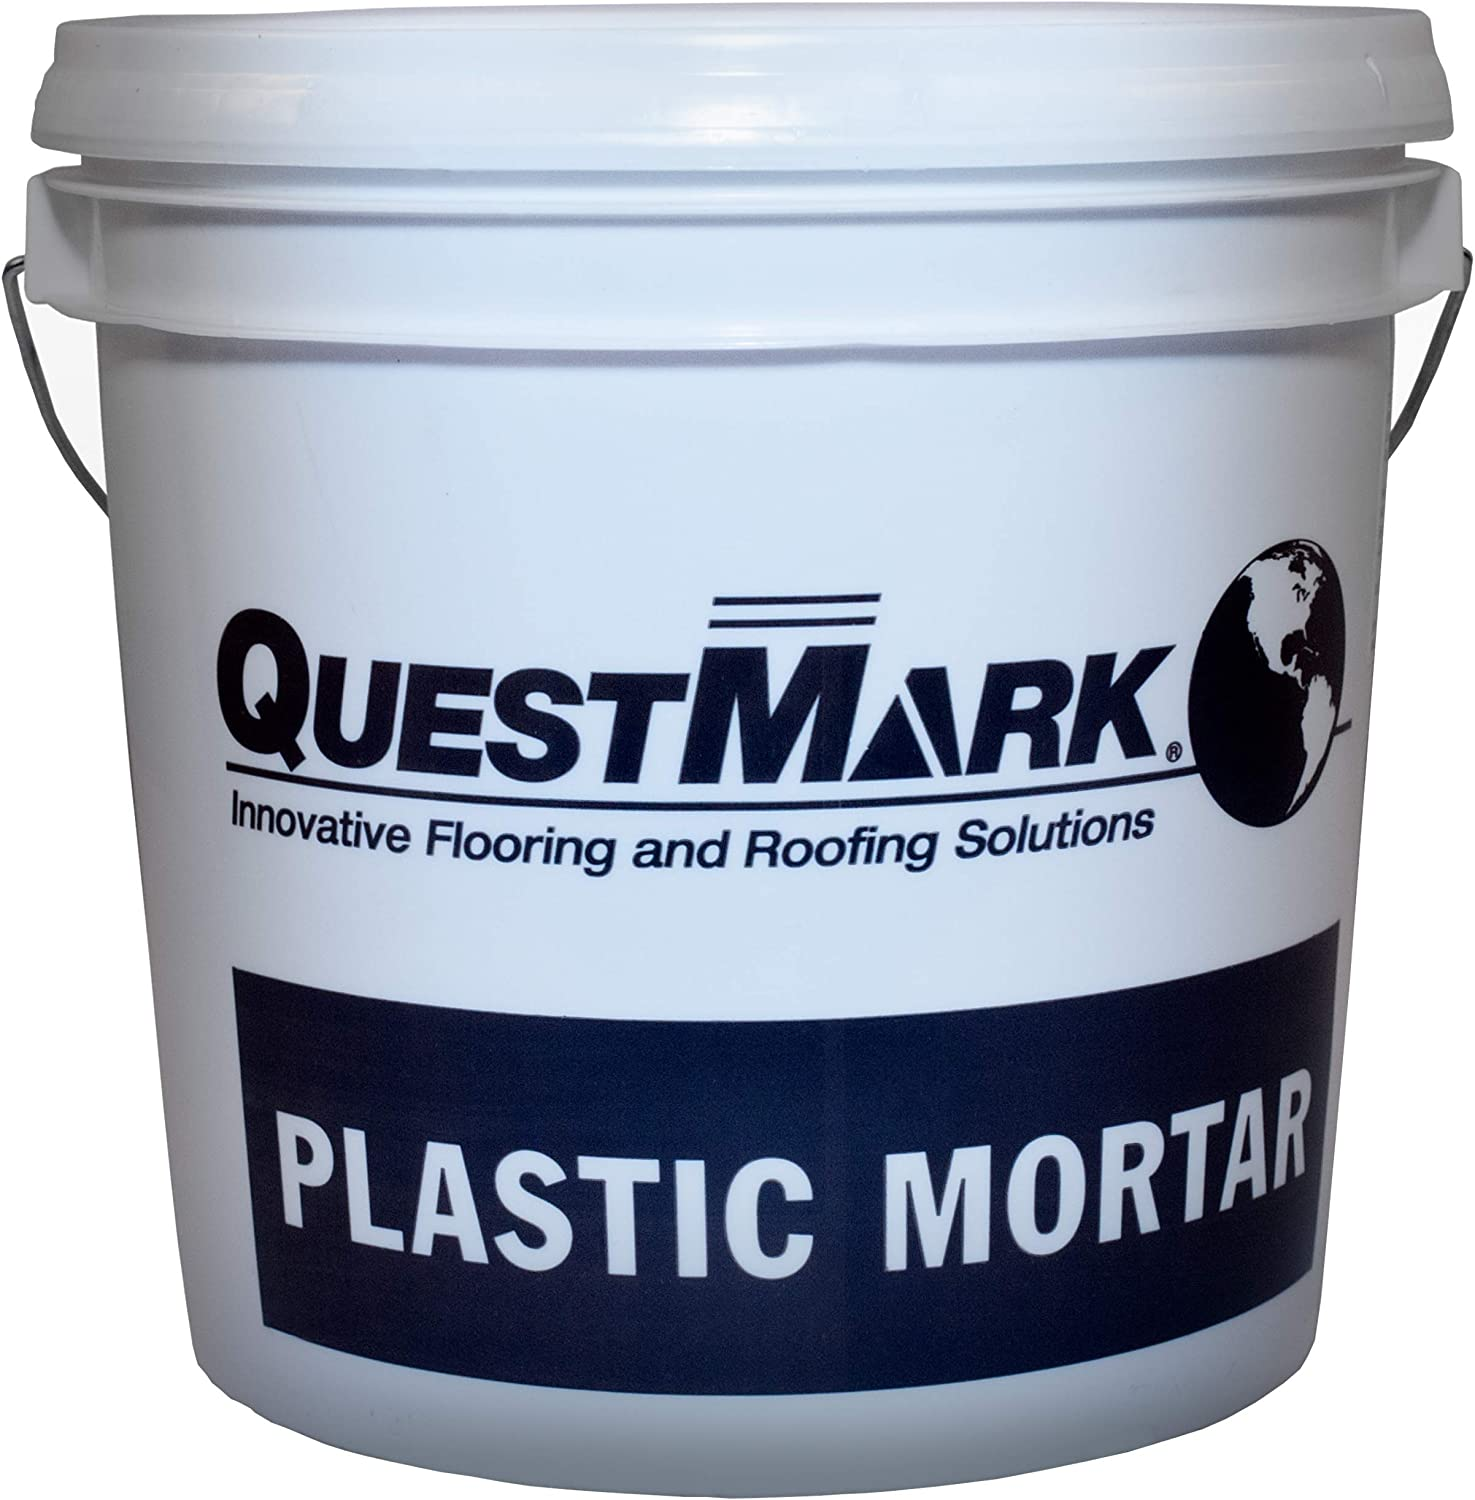 QuestMark 2343 Concrete Quick Patch - Gray Unit Gallon Two 2 5 Max 63% OFF ☆ very popular